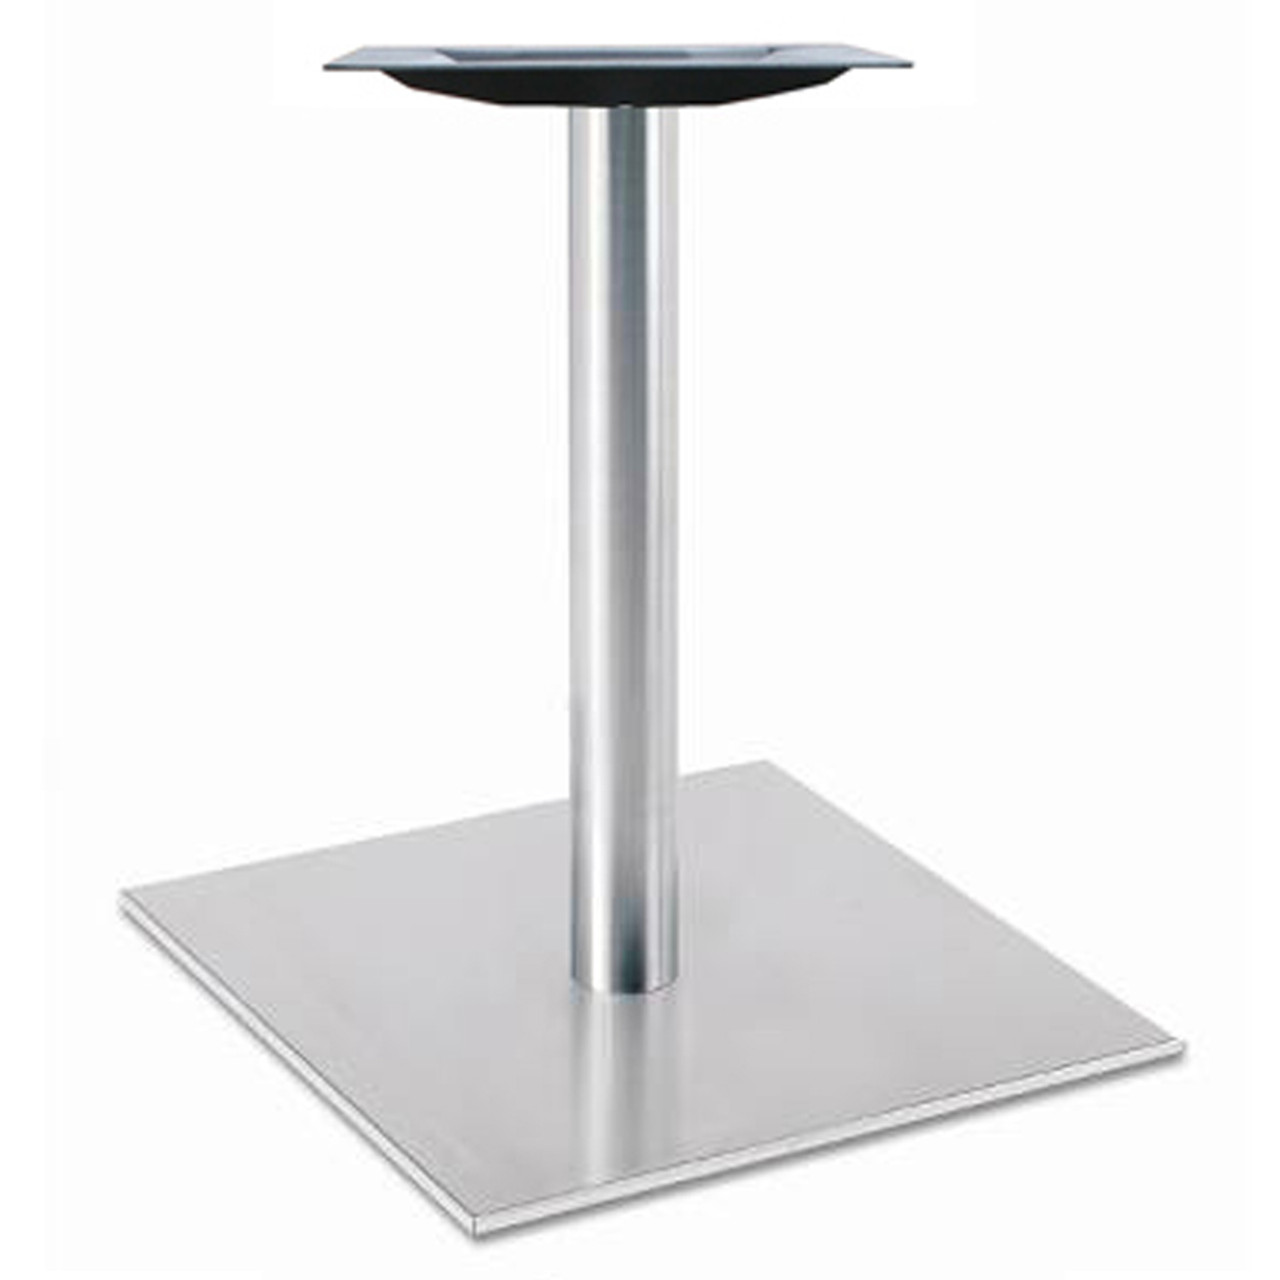 """Square, Brushed Stainless Steel Table Base, 28-3/8"""" height, 17"""" round base, 3""""diameter steel column - replacementtablelegs.com"""